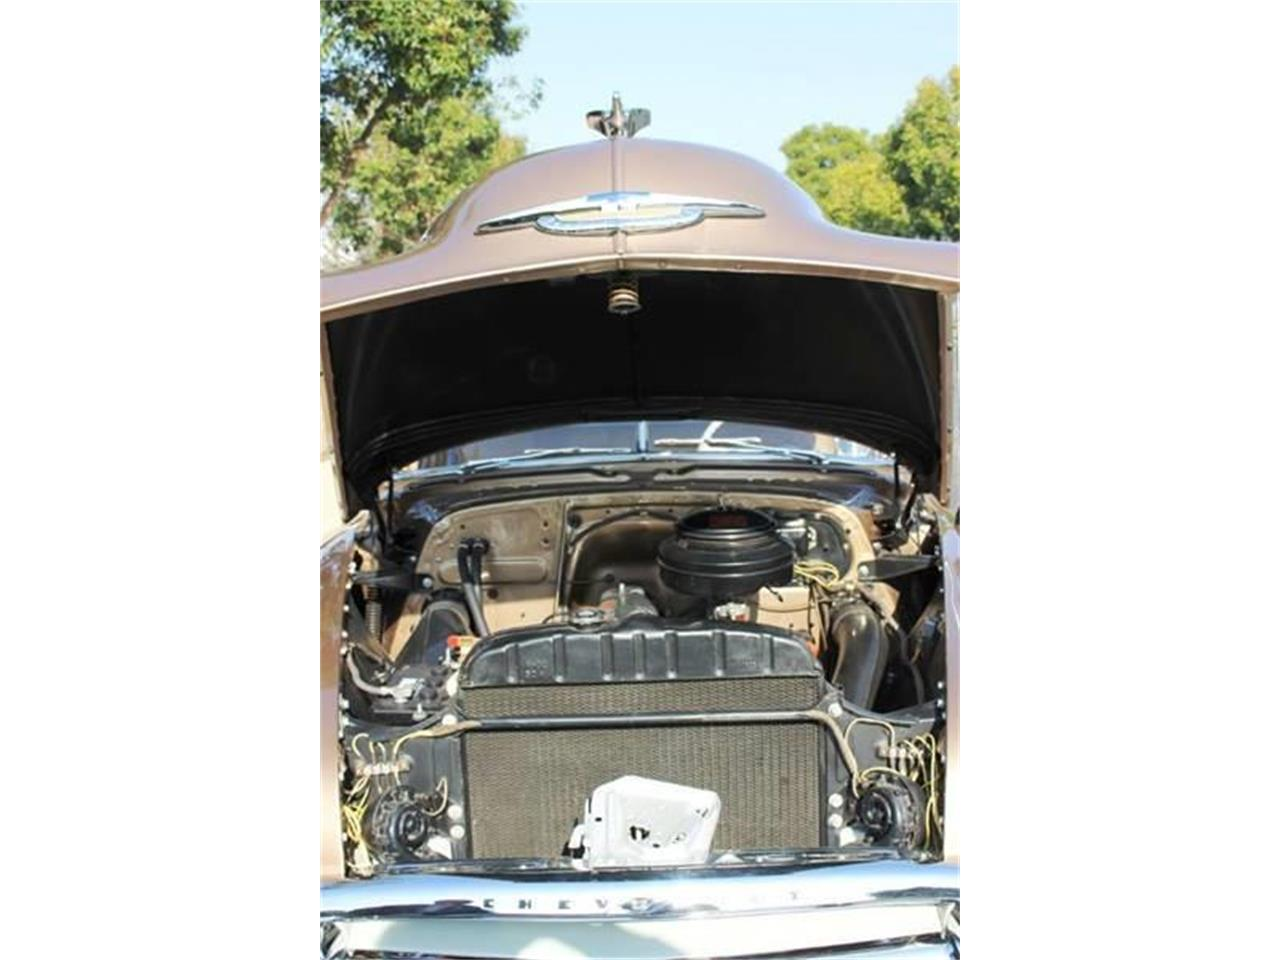 1950 Chevrolet Styleline Deluxe for sale in La Verne, CA – photo 45